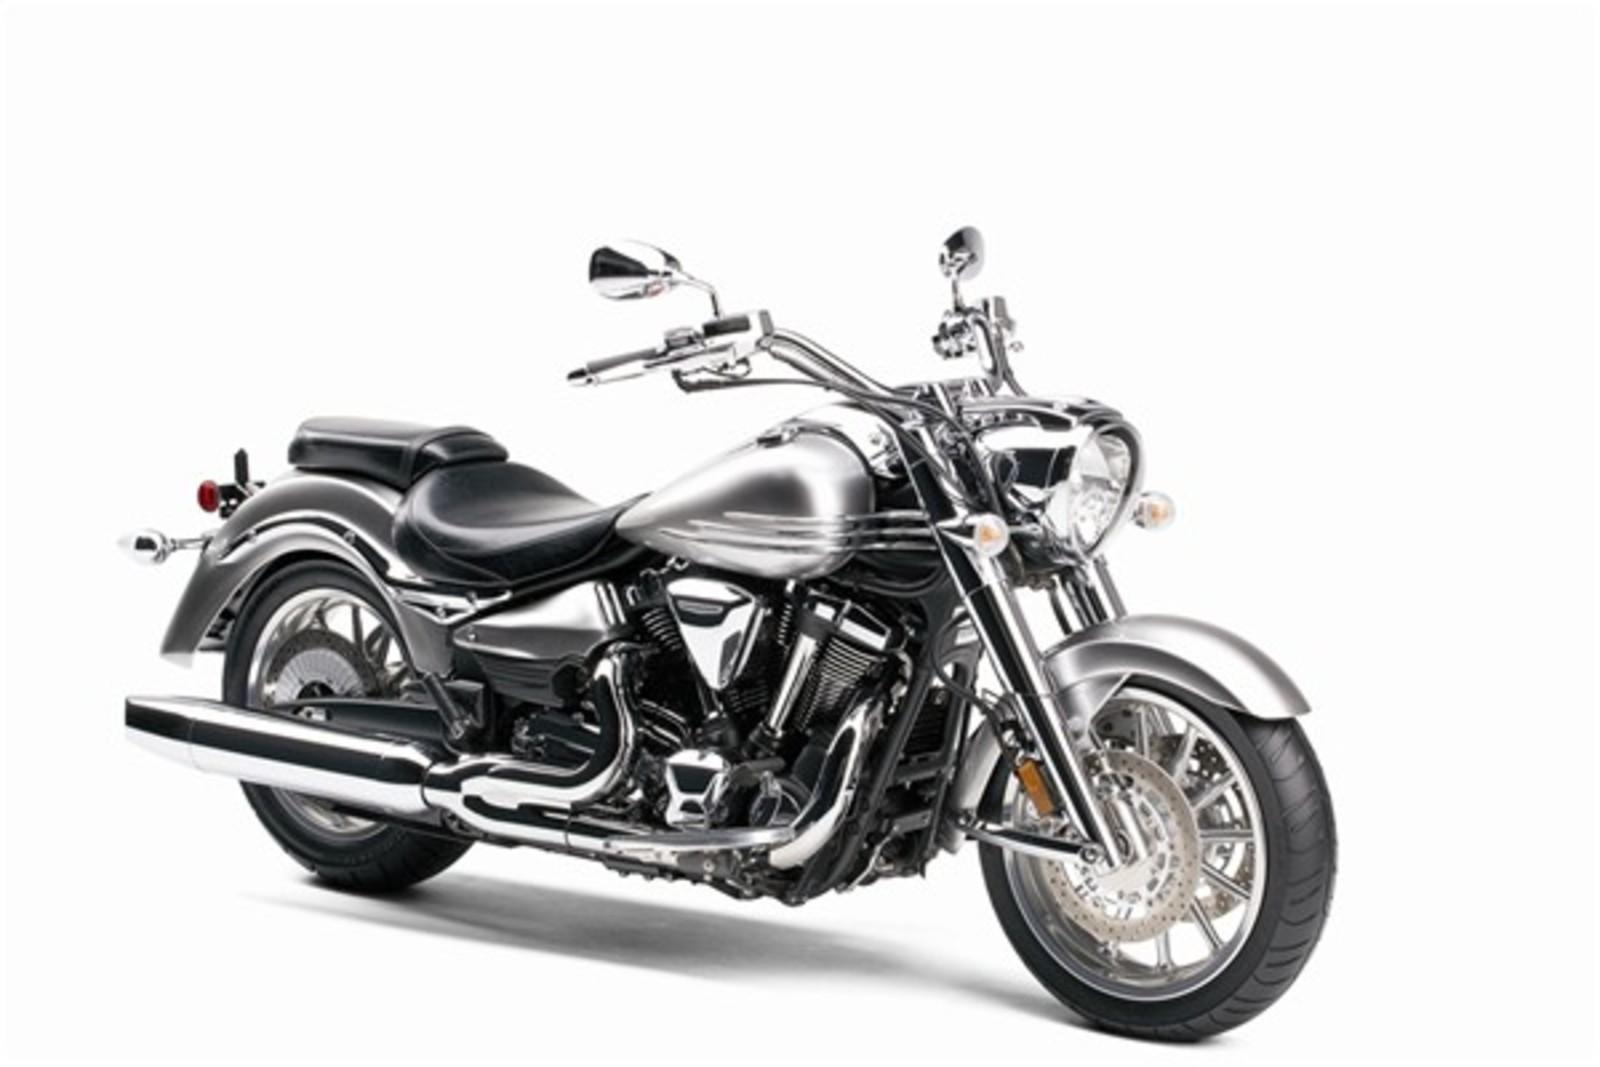 2007 yamaha roadliner s review top speed for 2006 yamaha stratoliner review